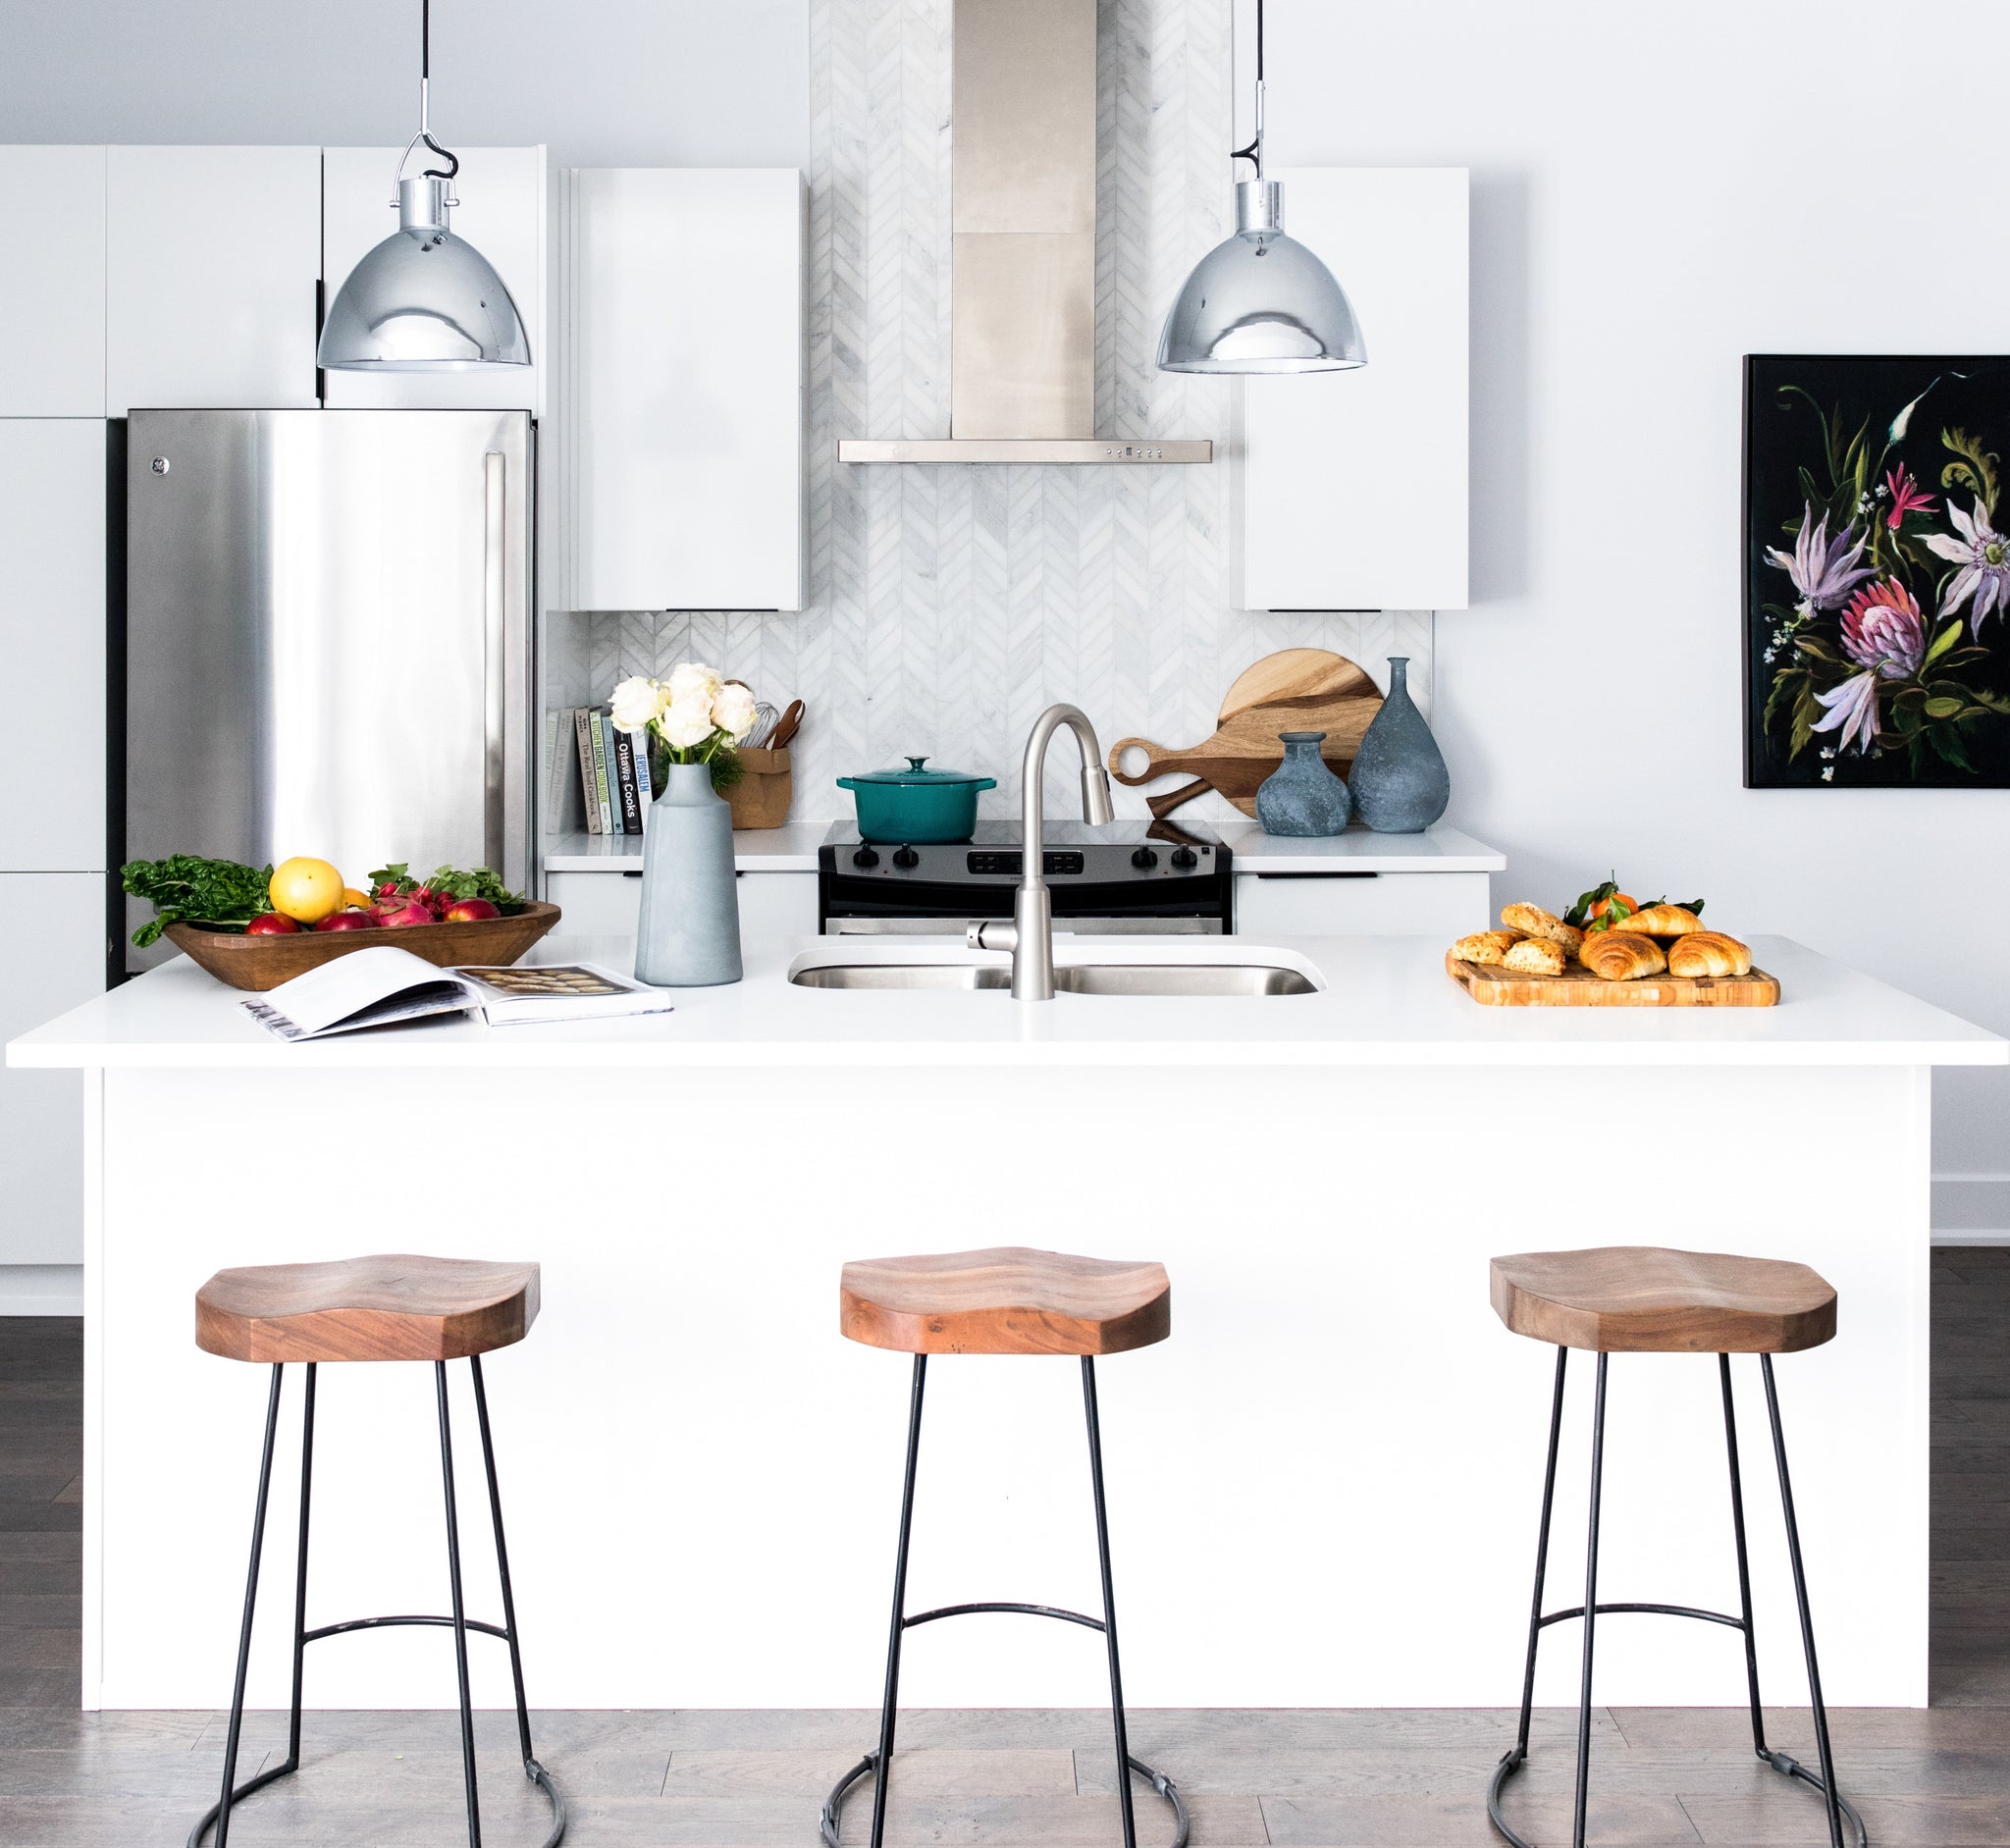 Kitchen vignette with island and barstools